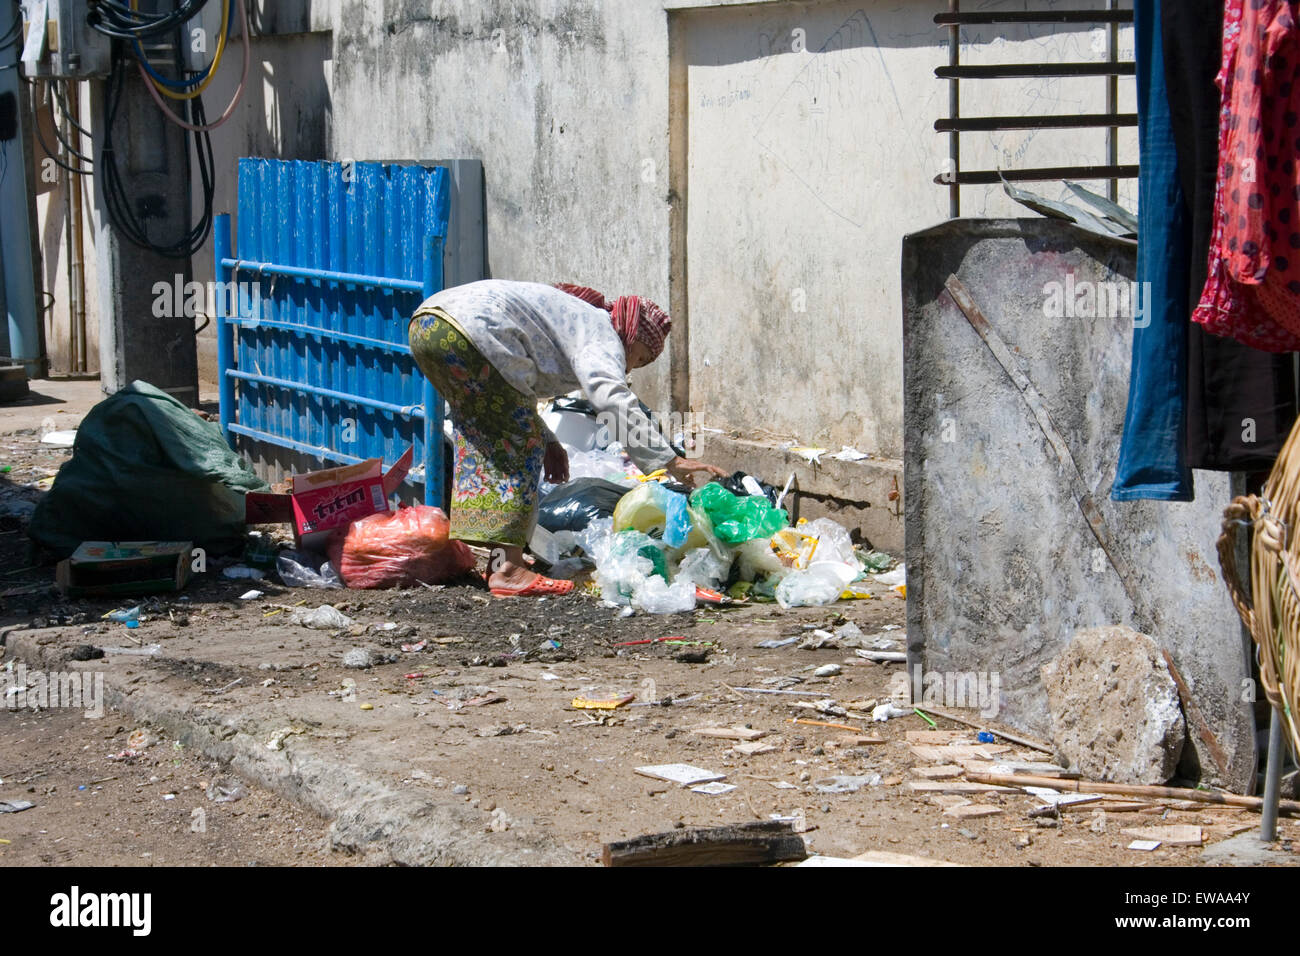 An elderly woman is scavenging through plastic for recyclable material on a city street in Kampong Cham, Cambodia. - Stock Image